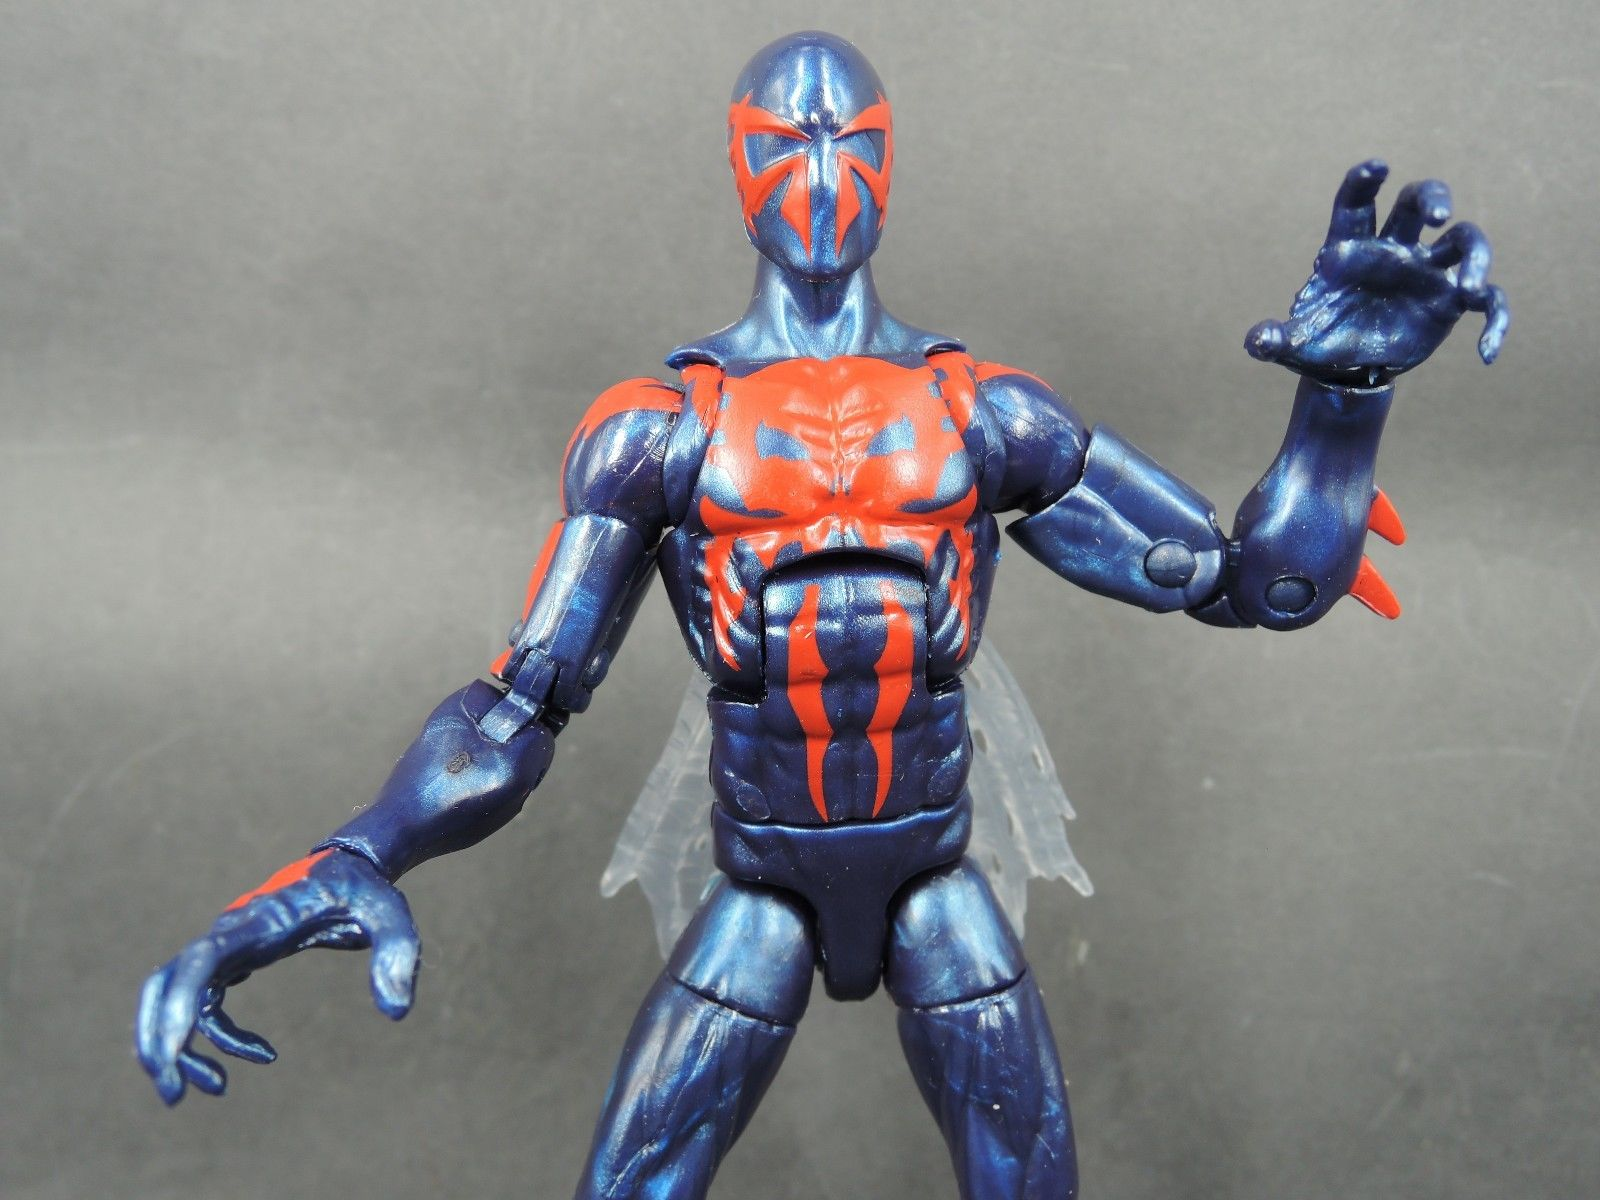 Marvel Legends 2015 Spiderman Figures Hit eBay - The ...